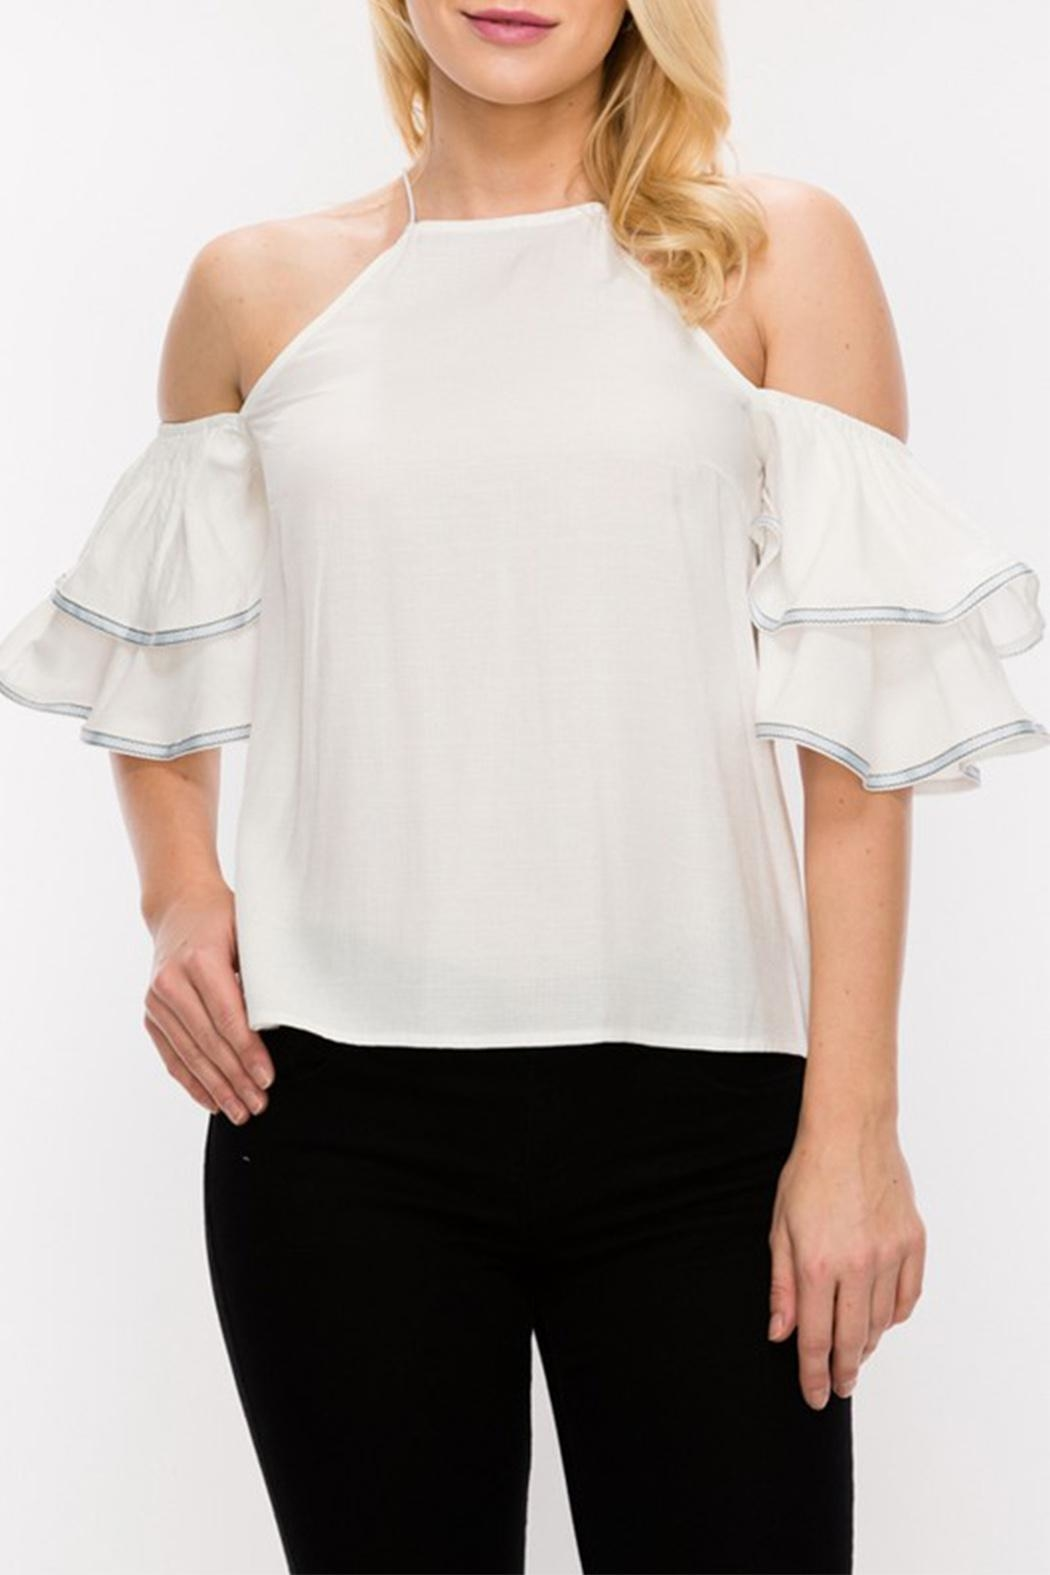 HYFVE Cold Shoulder Blouse - Main Image